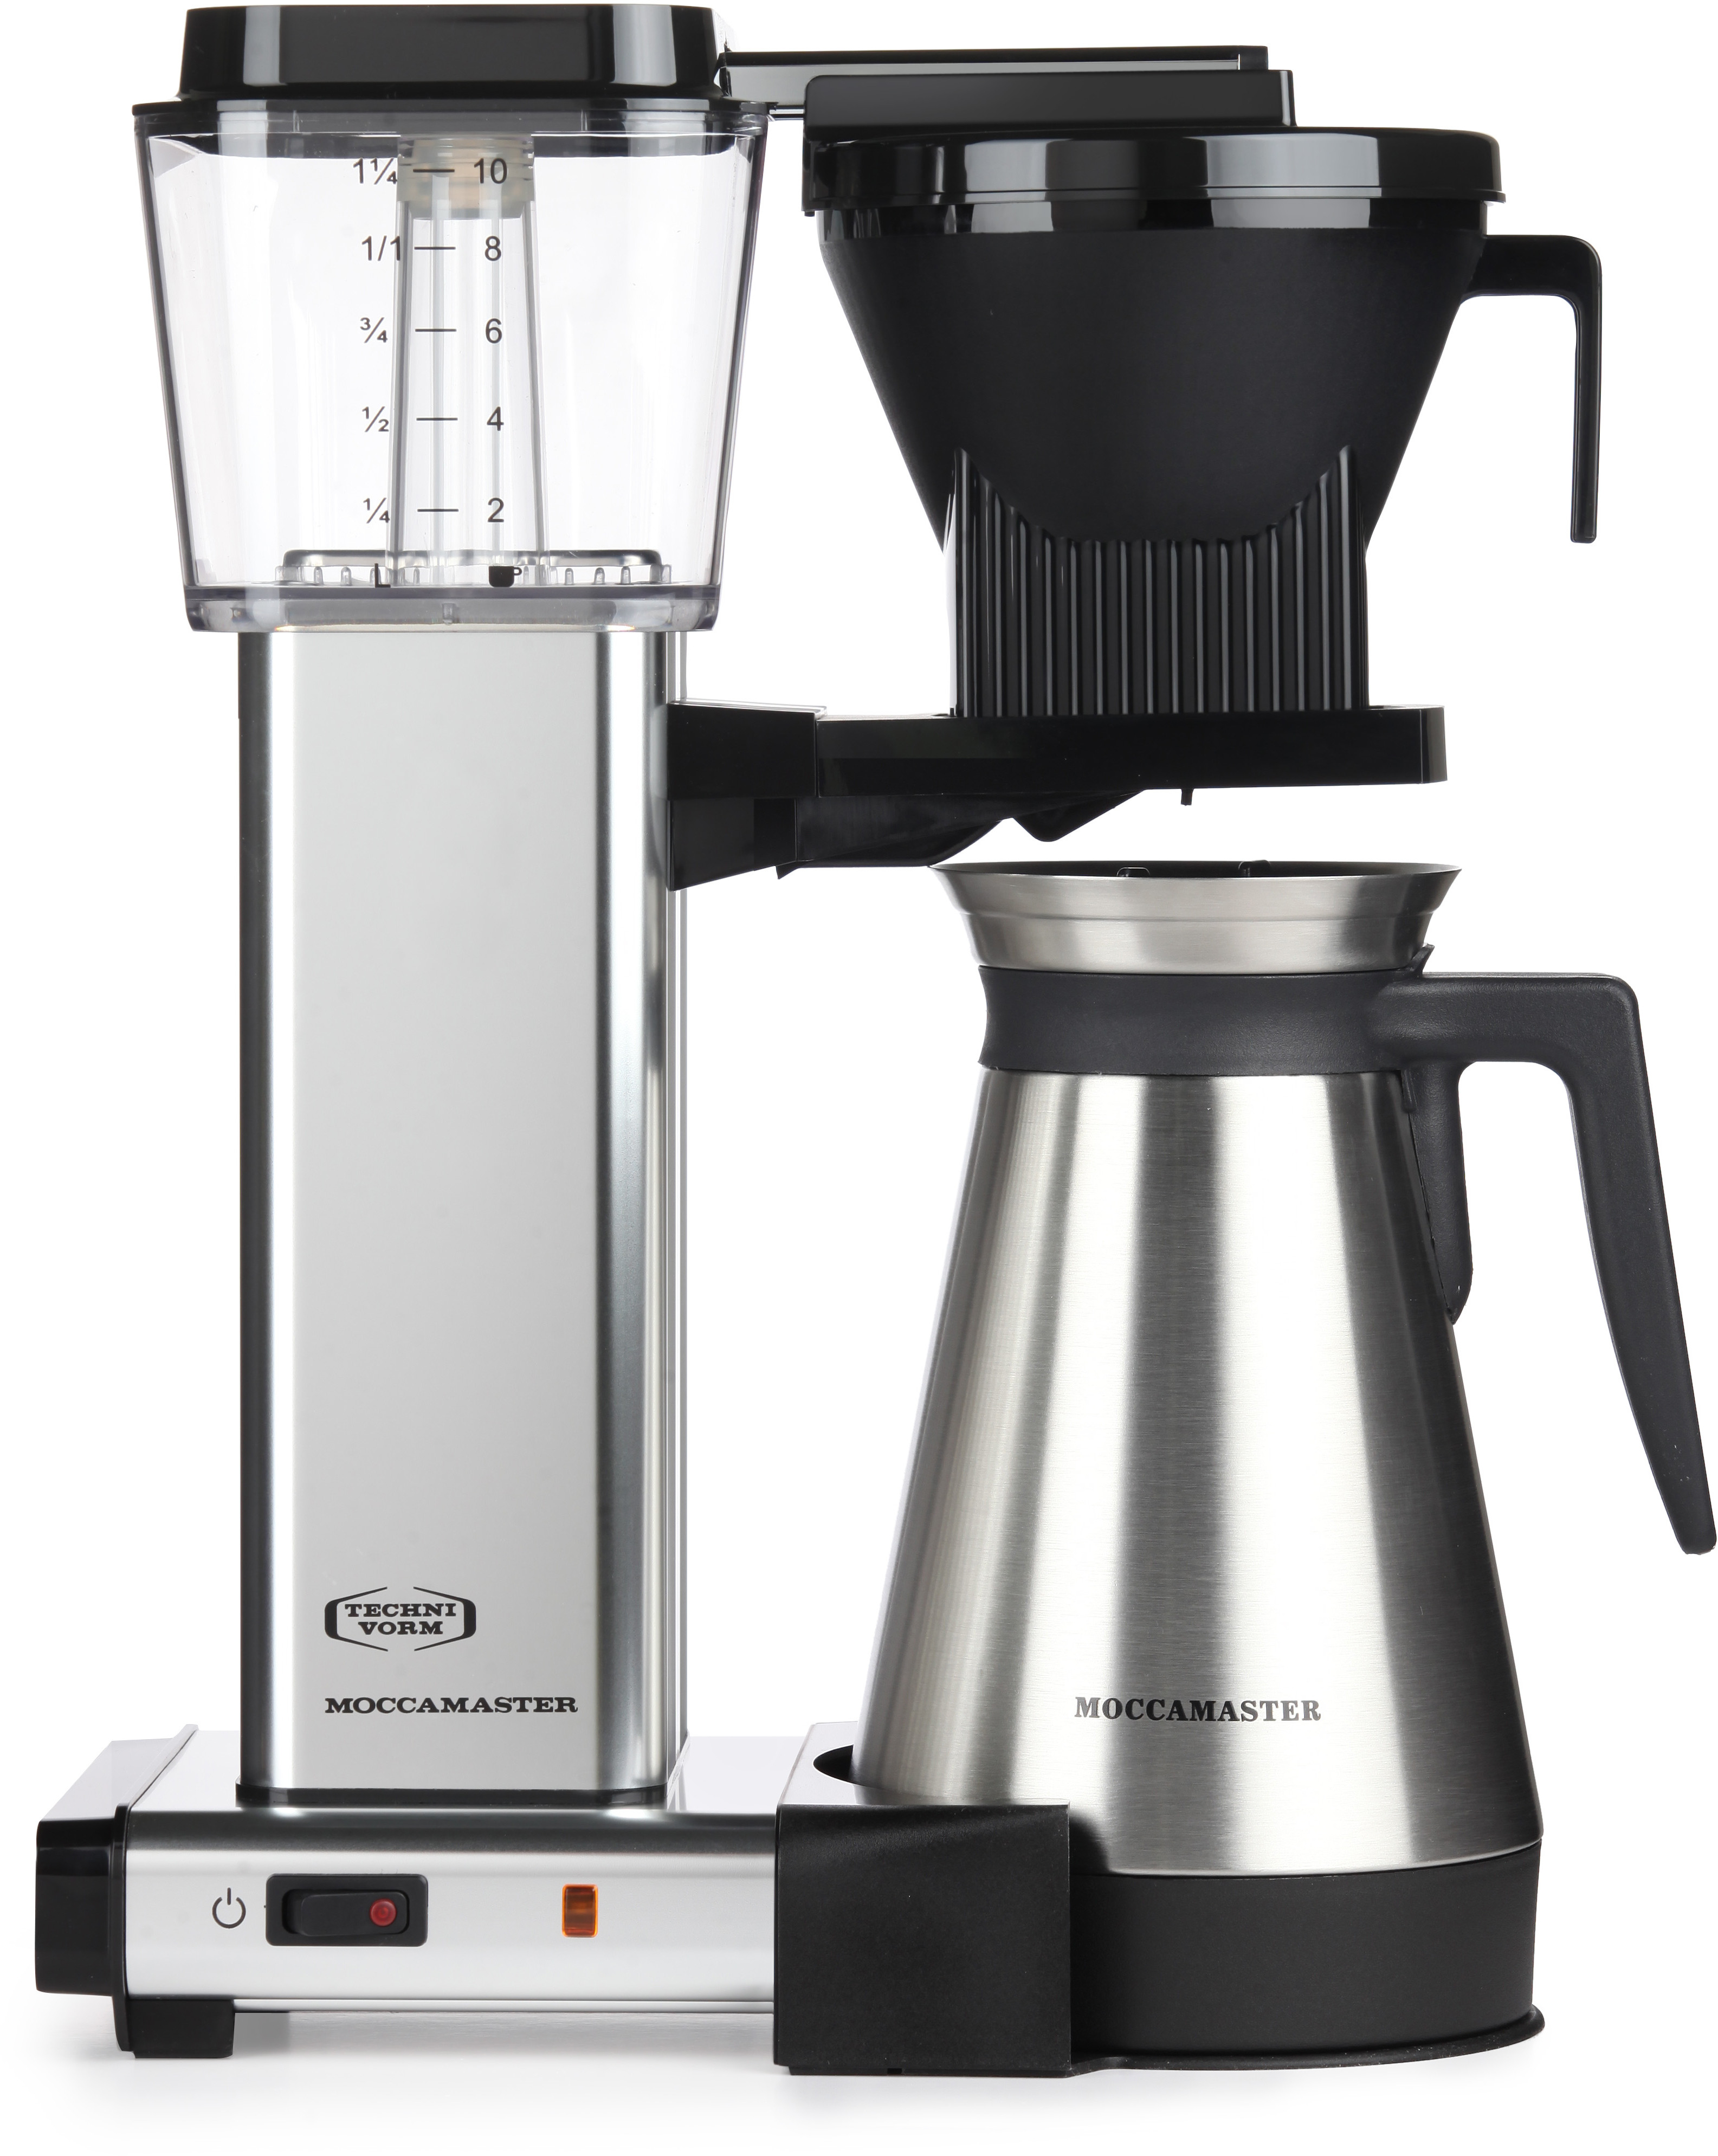 Technivorm 79312 Moccamaster Kbgt Drip Coffee Maker With Copper